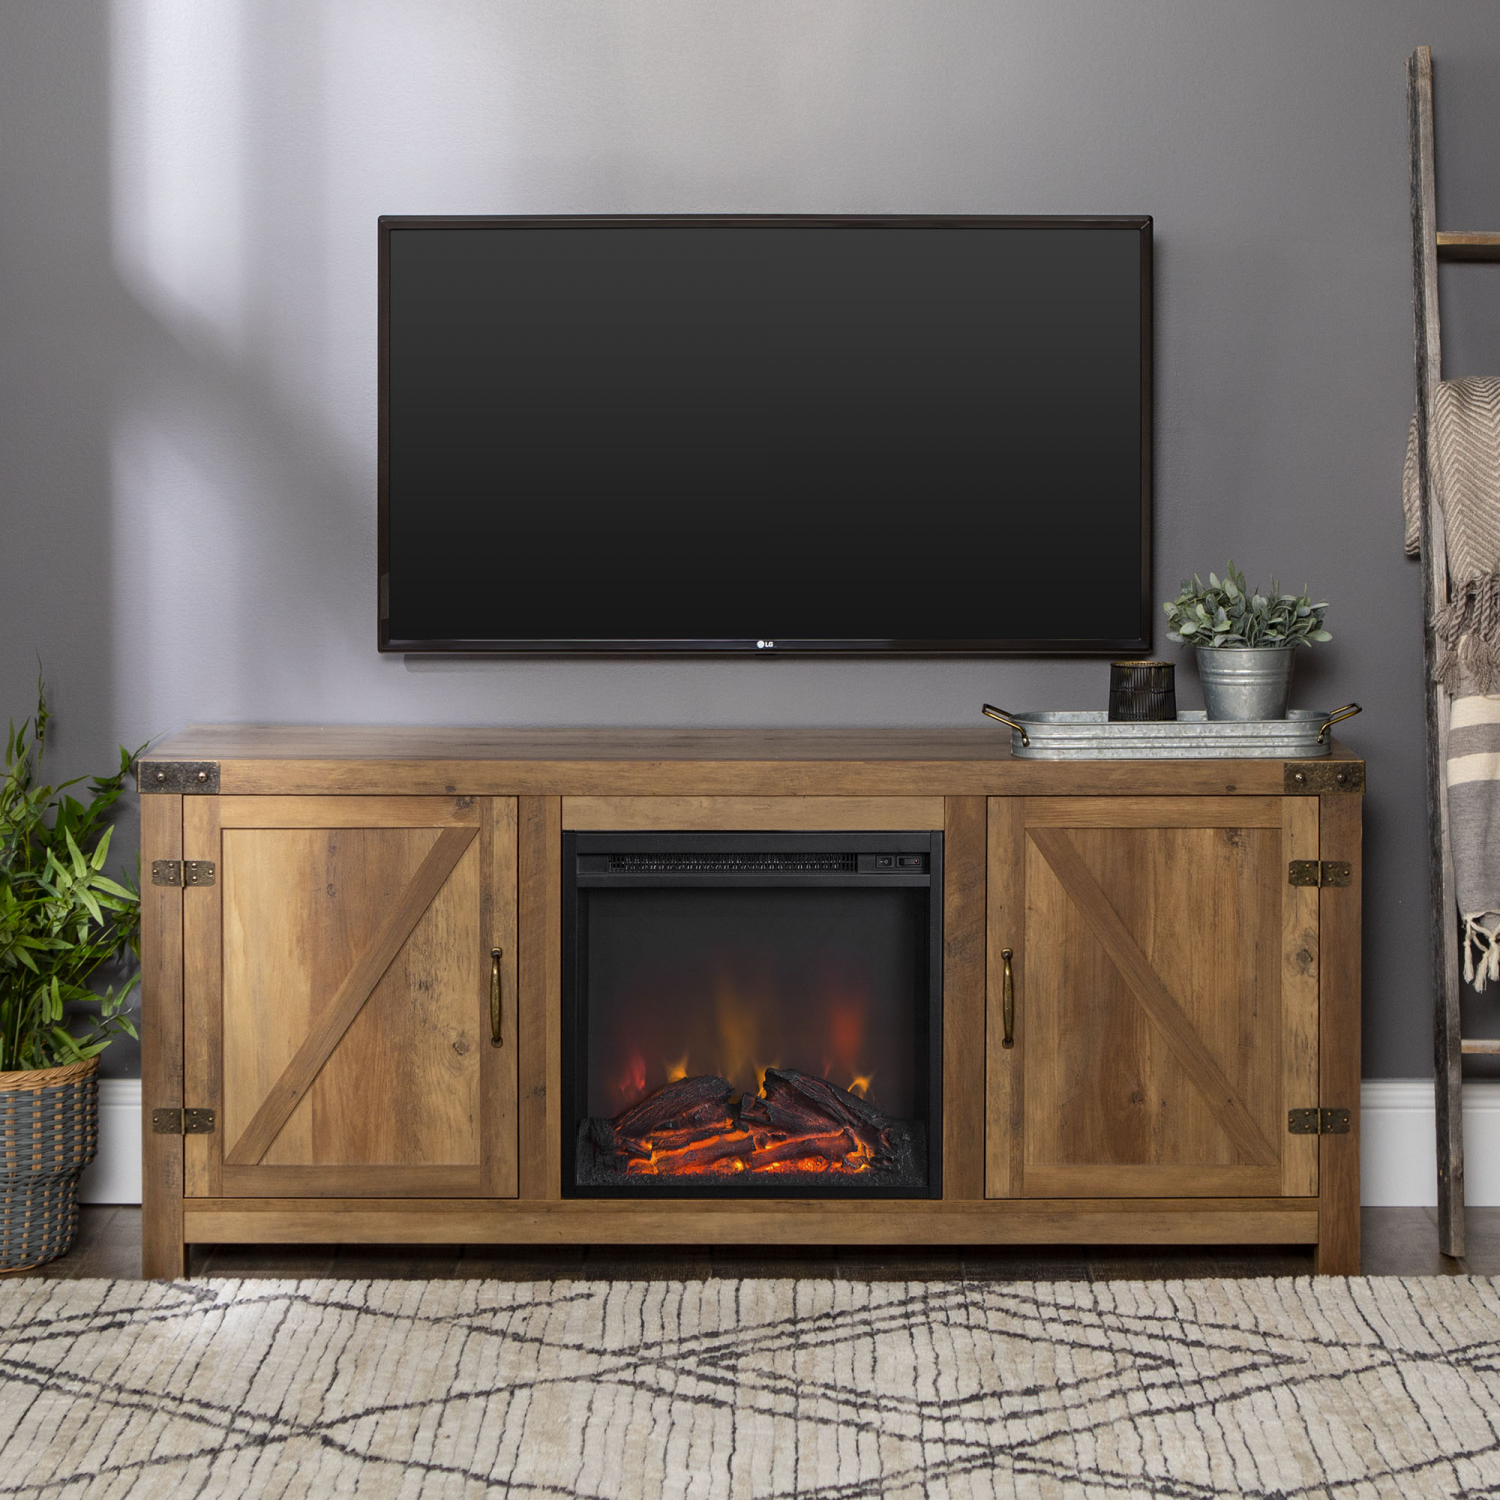 Details About Tv Stand Modern Farmhouse Barn Door Cabinet Electric Fireplace Home Furniture